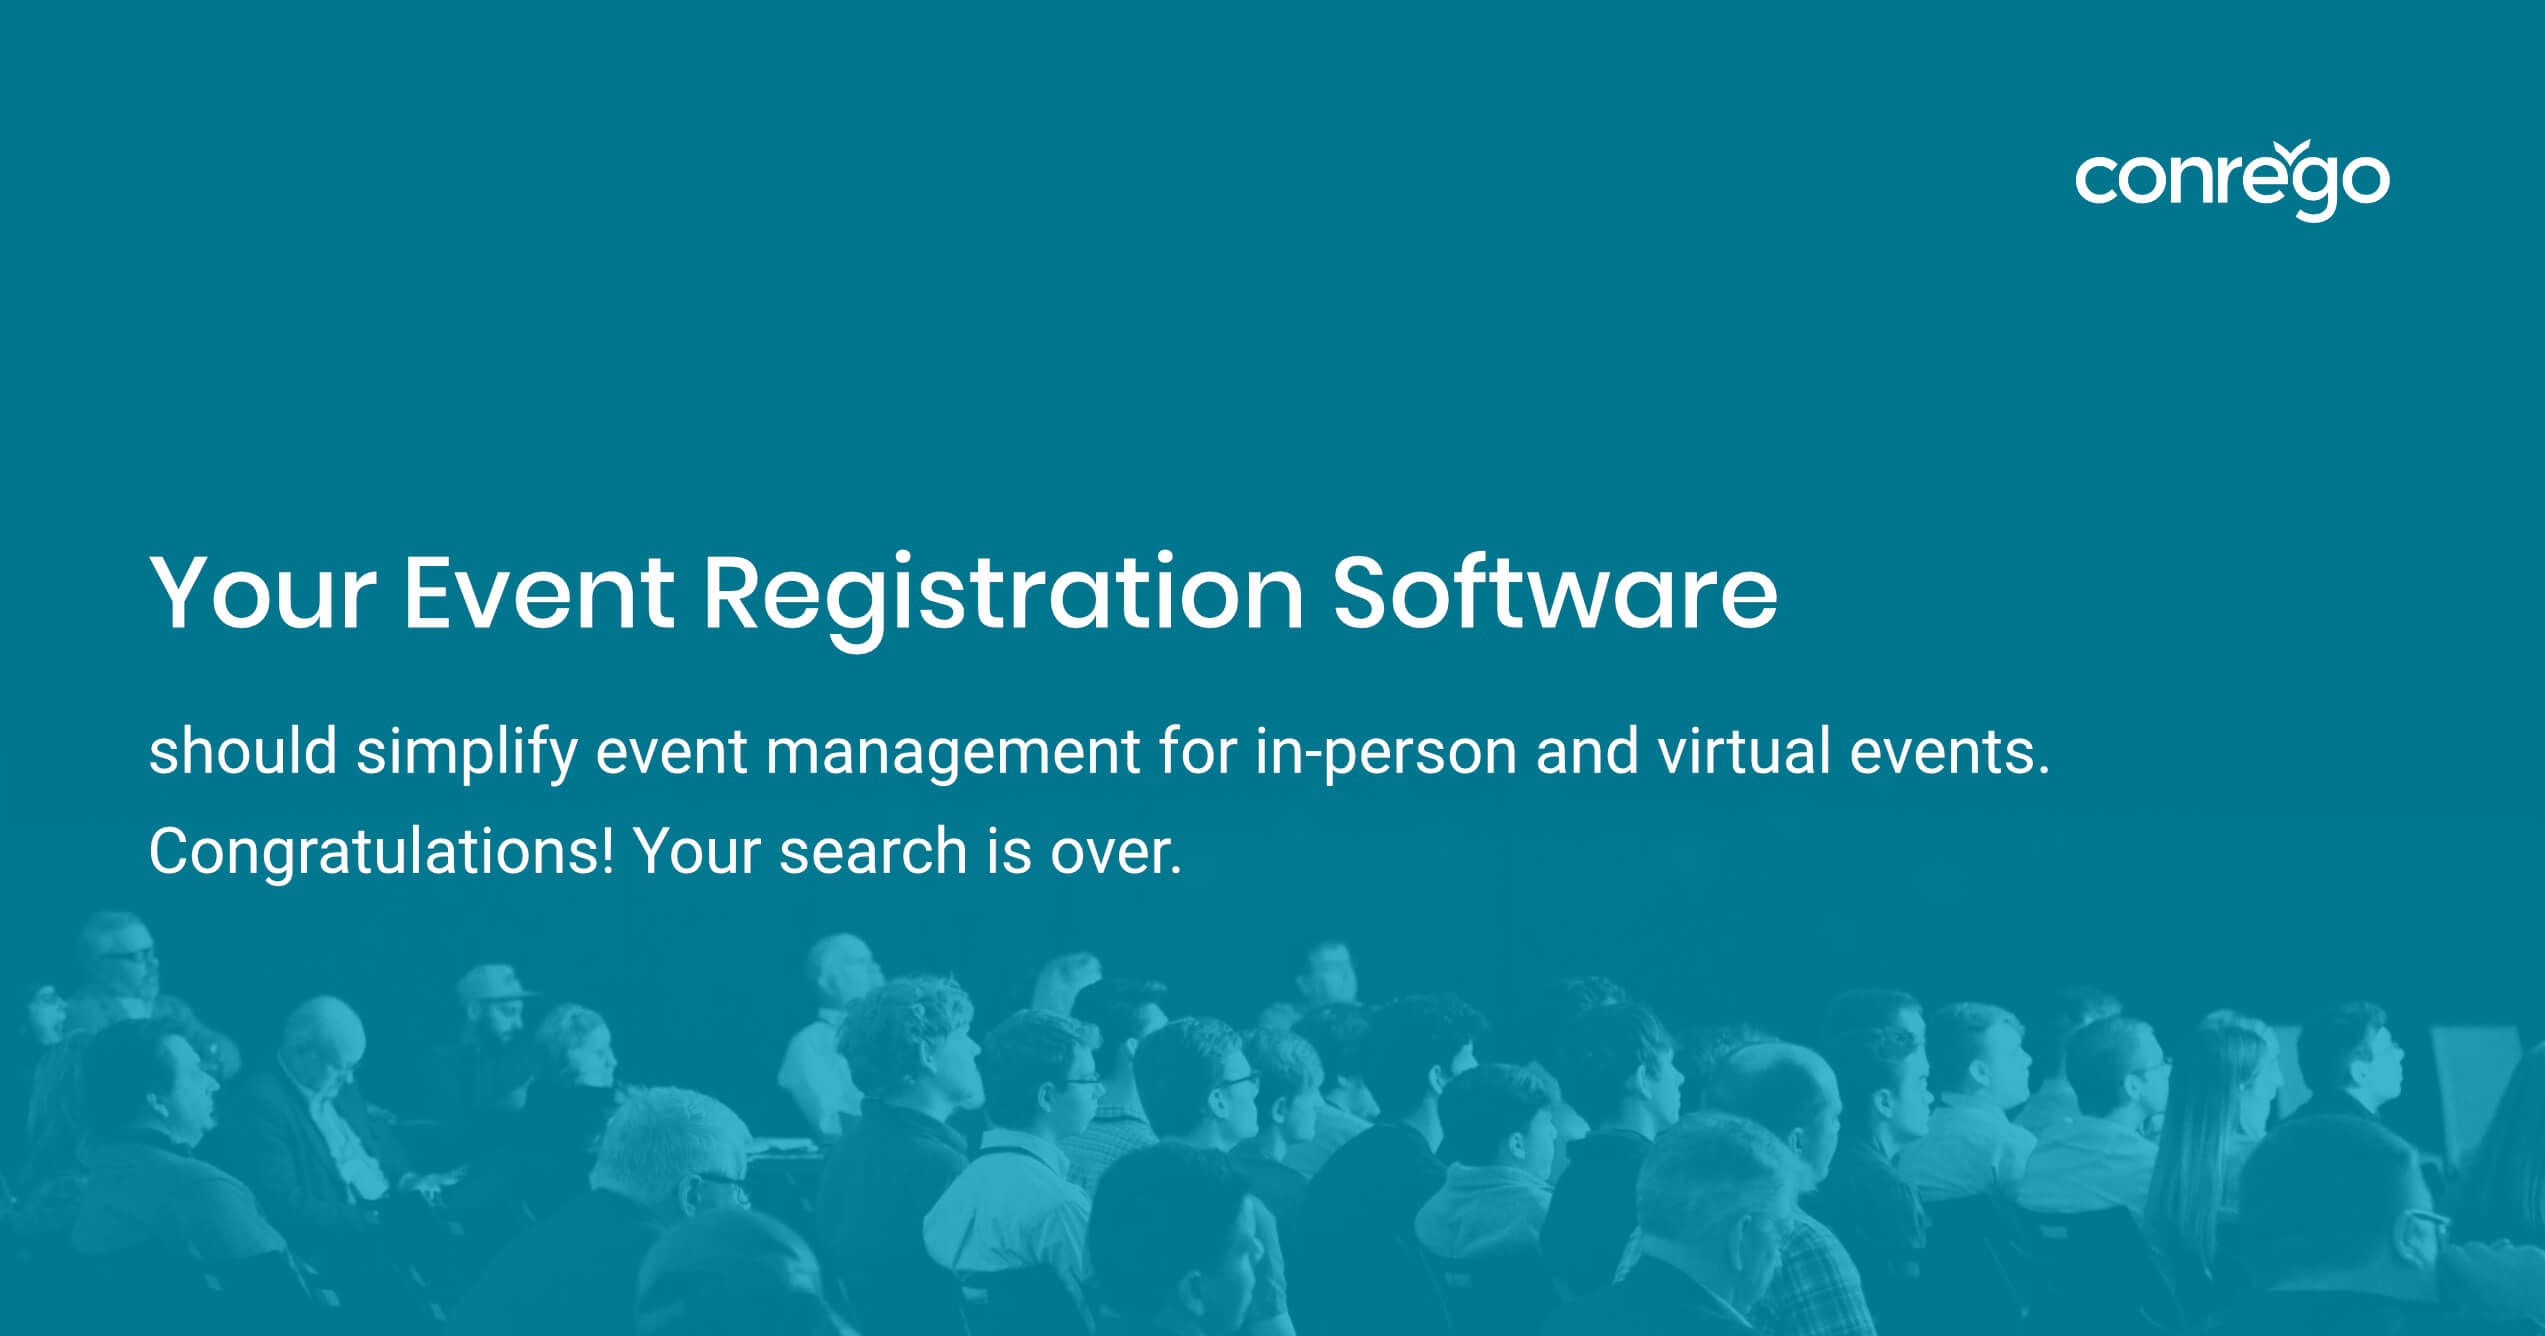 Recruiting volunteers with CONREGO event registration software